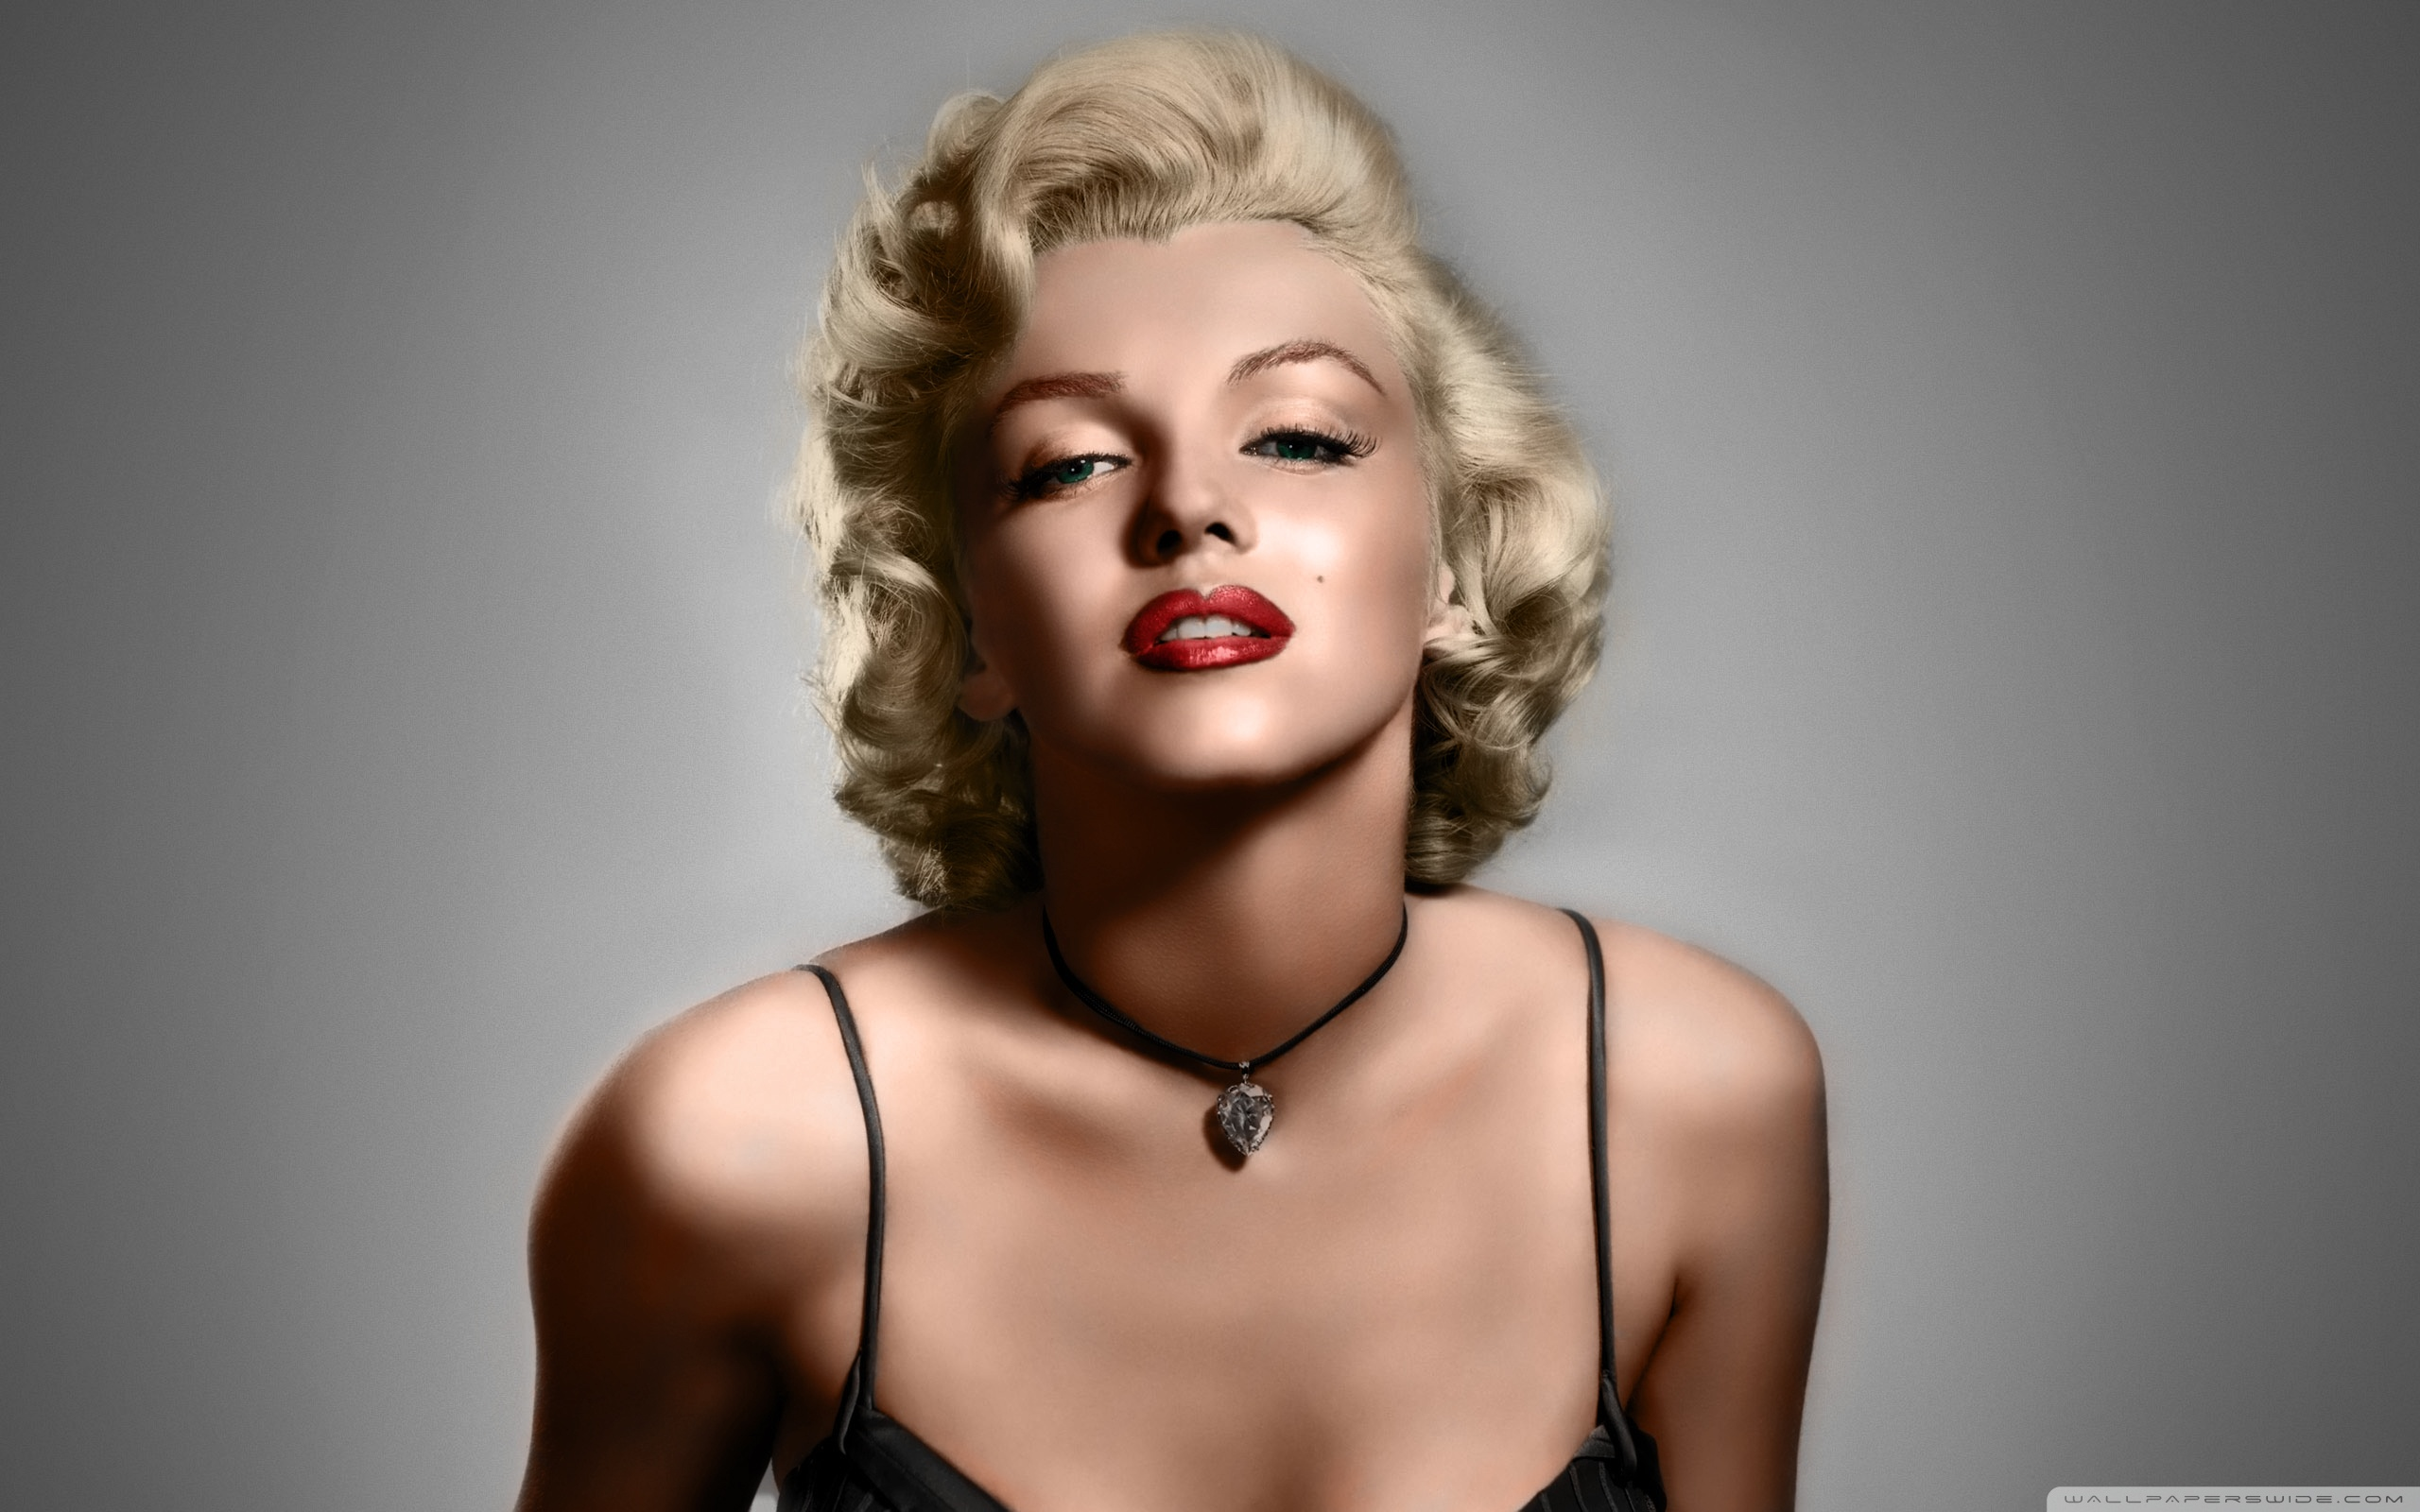 Marilyn Monroe Art Wallpaper